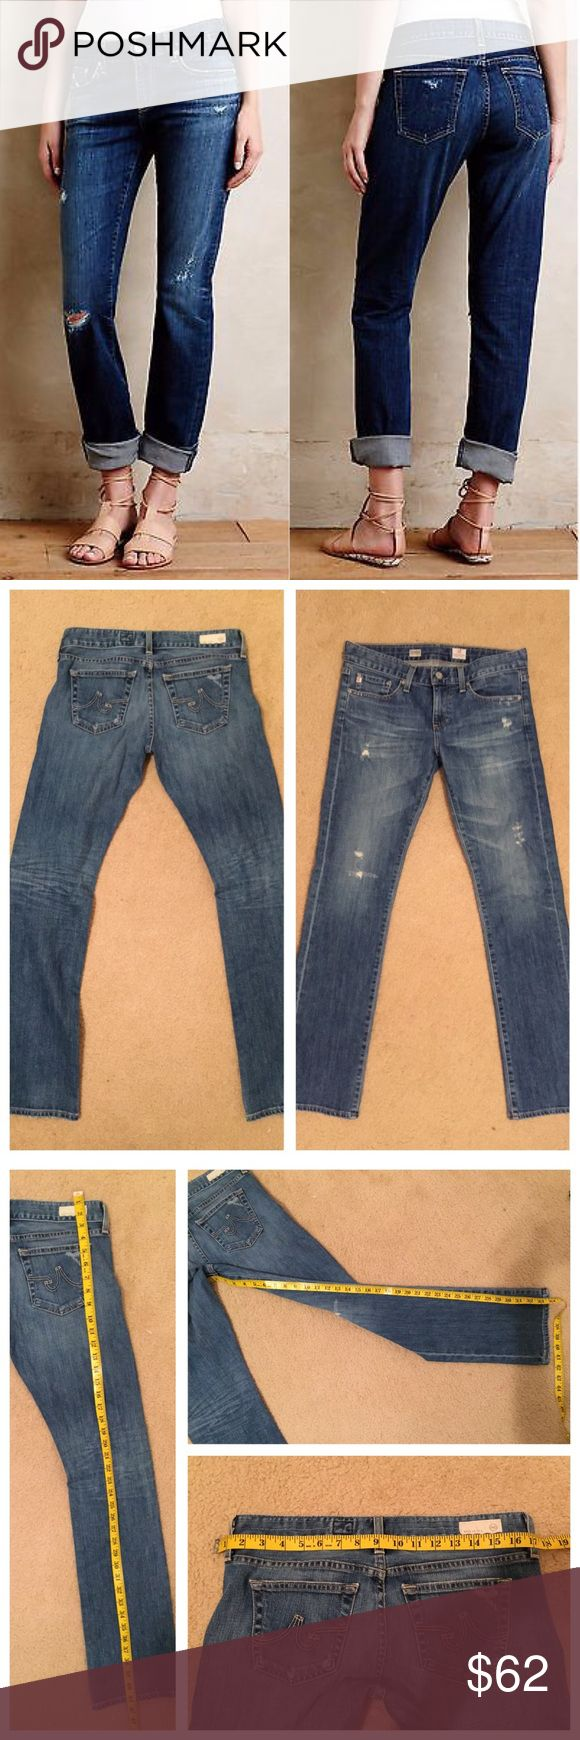 Anthropologie tomboy relaxed straight jeans Size 28 R. By AG Adriano goldschmied gently worn and super cute on! 🙆🏻no trades or off site transactions.I offer a variety of sizes therefore I do not model🙅🏻Please accept that I will counteroffer the lowest amount I'm willing to take at that point😁I have an illness that sometimes requires serious medical attention & 2 little ones👶🏼👶🏻so if I don't respond I'm either very ill that day🚑 or have been kidnapped by my kids.Thank you for…